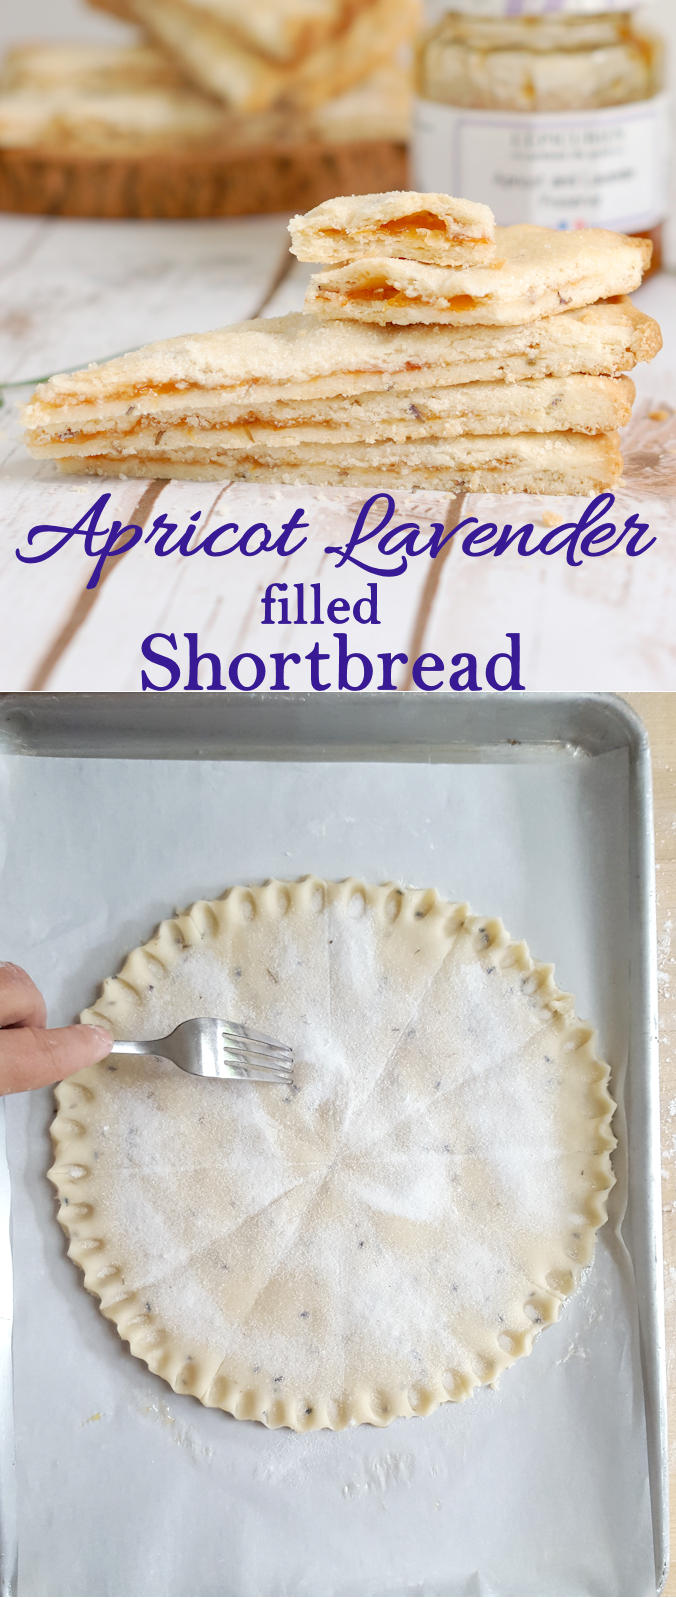 Apricot Lavender Shortbread is a great #Cookoutweek dessert. Easy to make ahead and it has perfectly summer flavors.